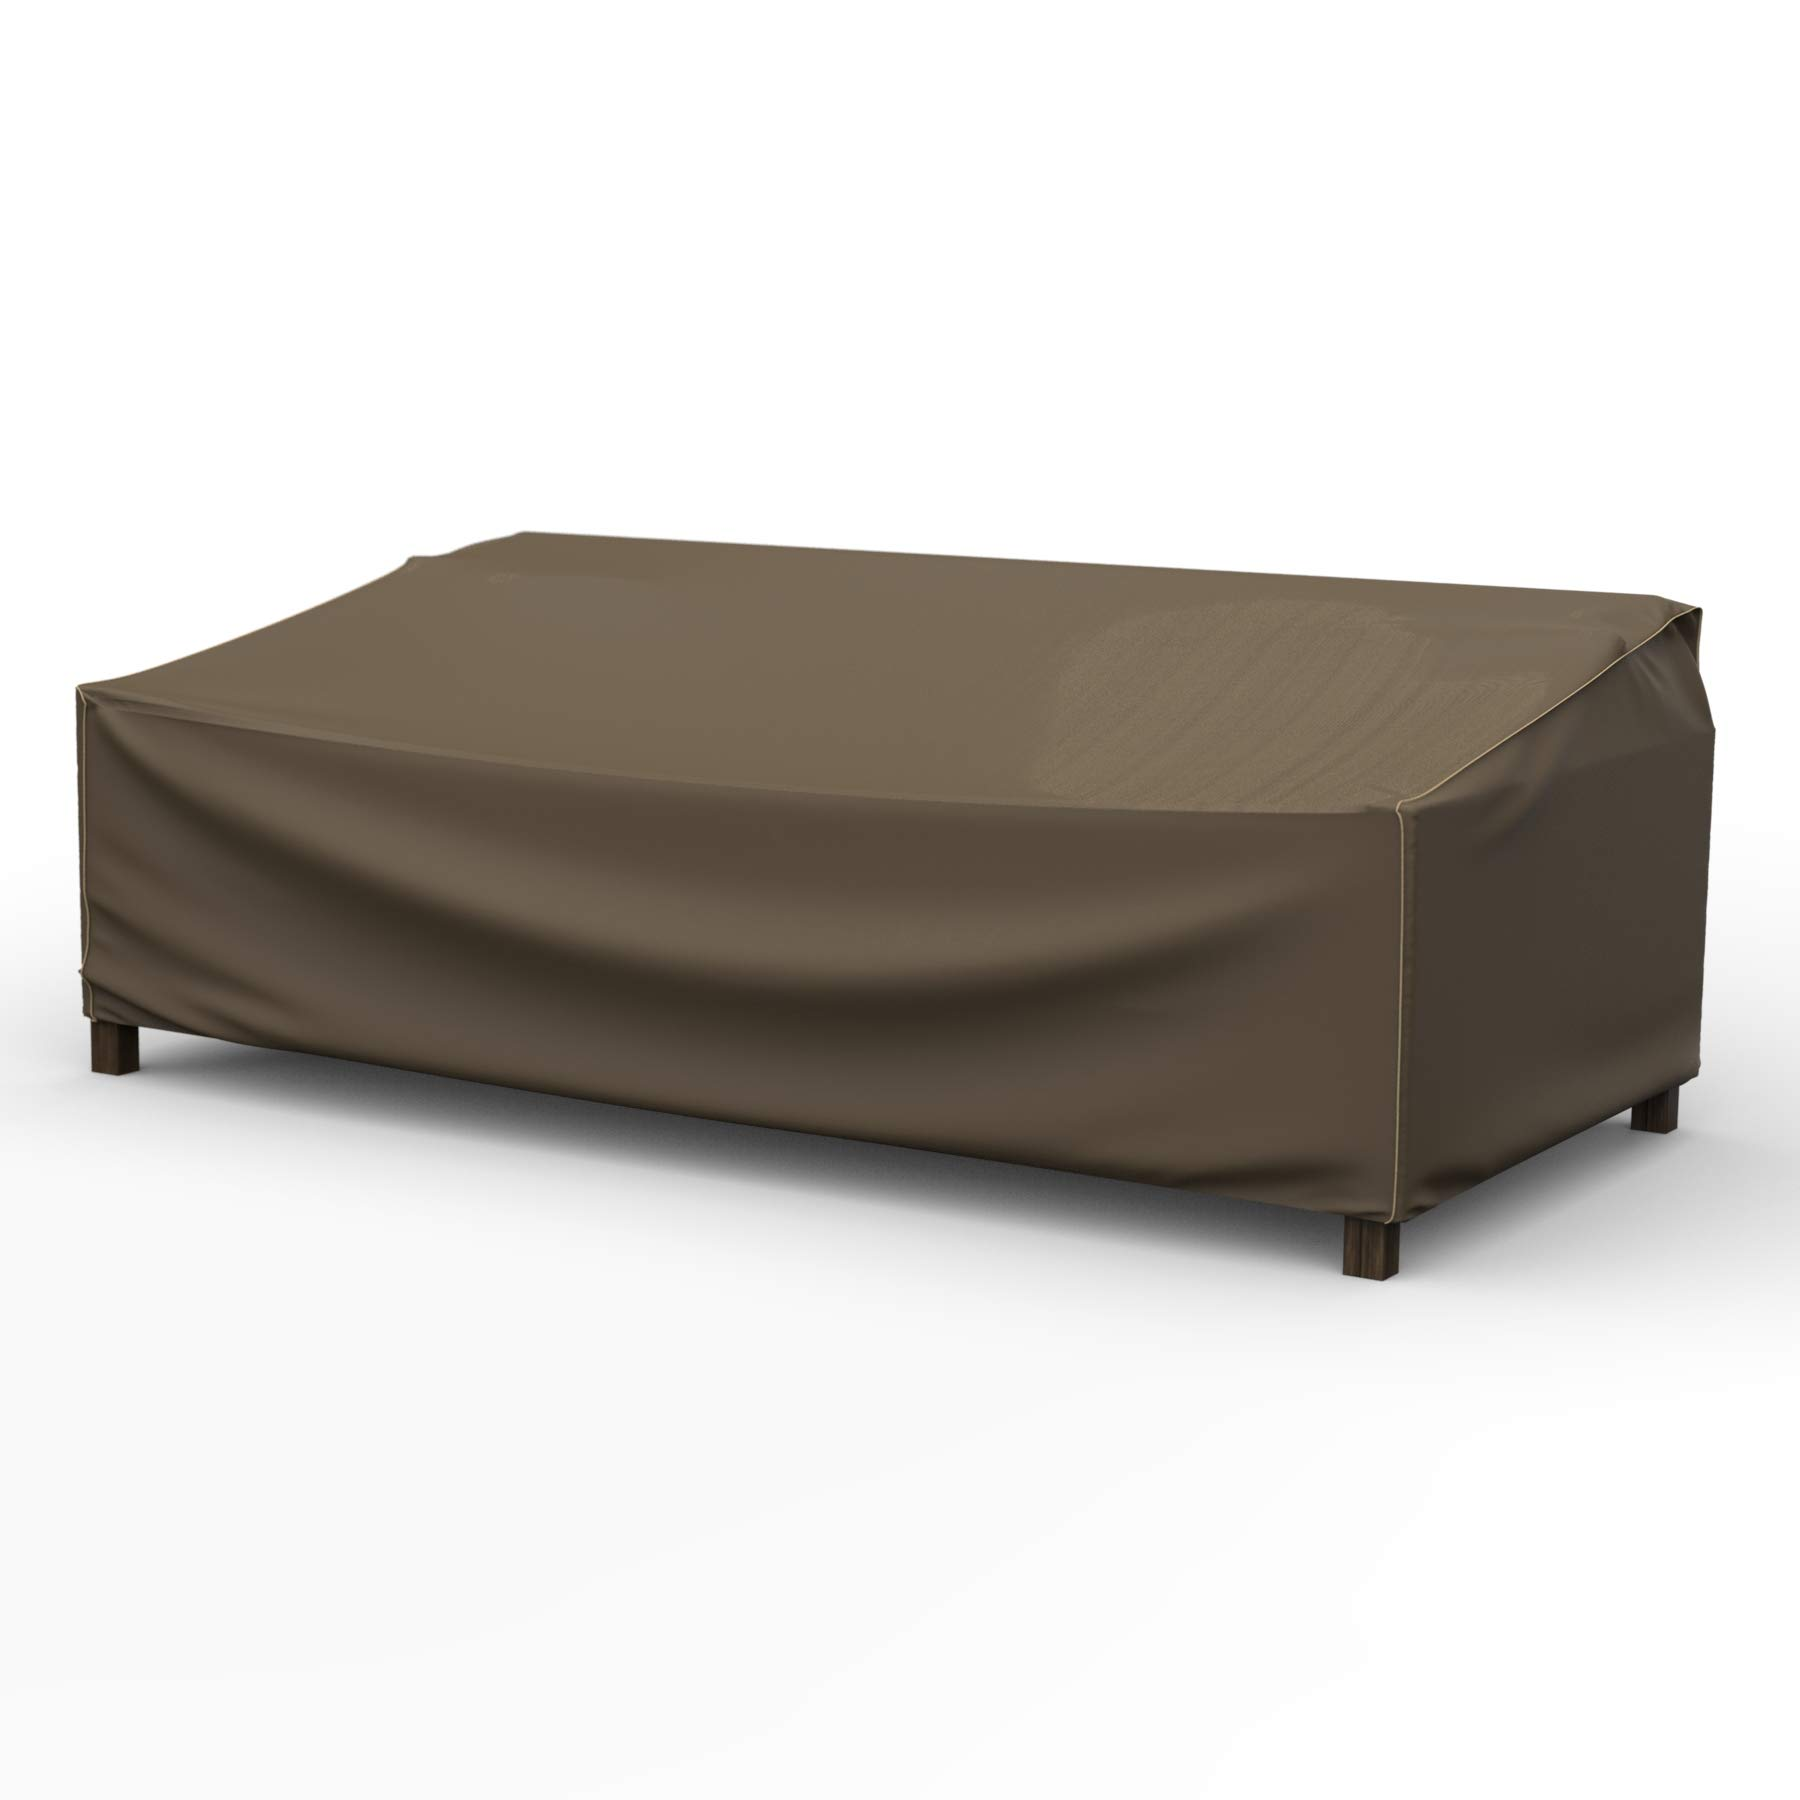 EmpireCovers NeverWet Platinum Outdoor Patio Sofa Cover, Extra Extra Large (Black and Tan Weave)